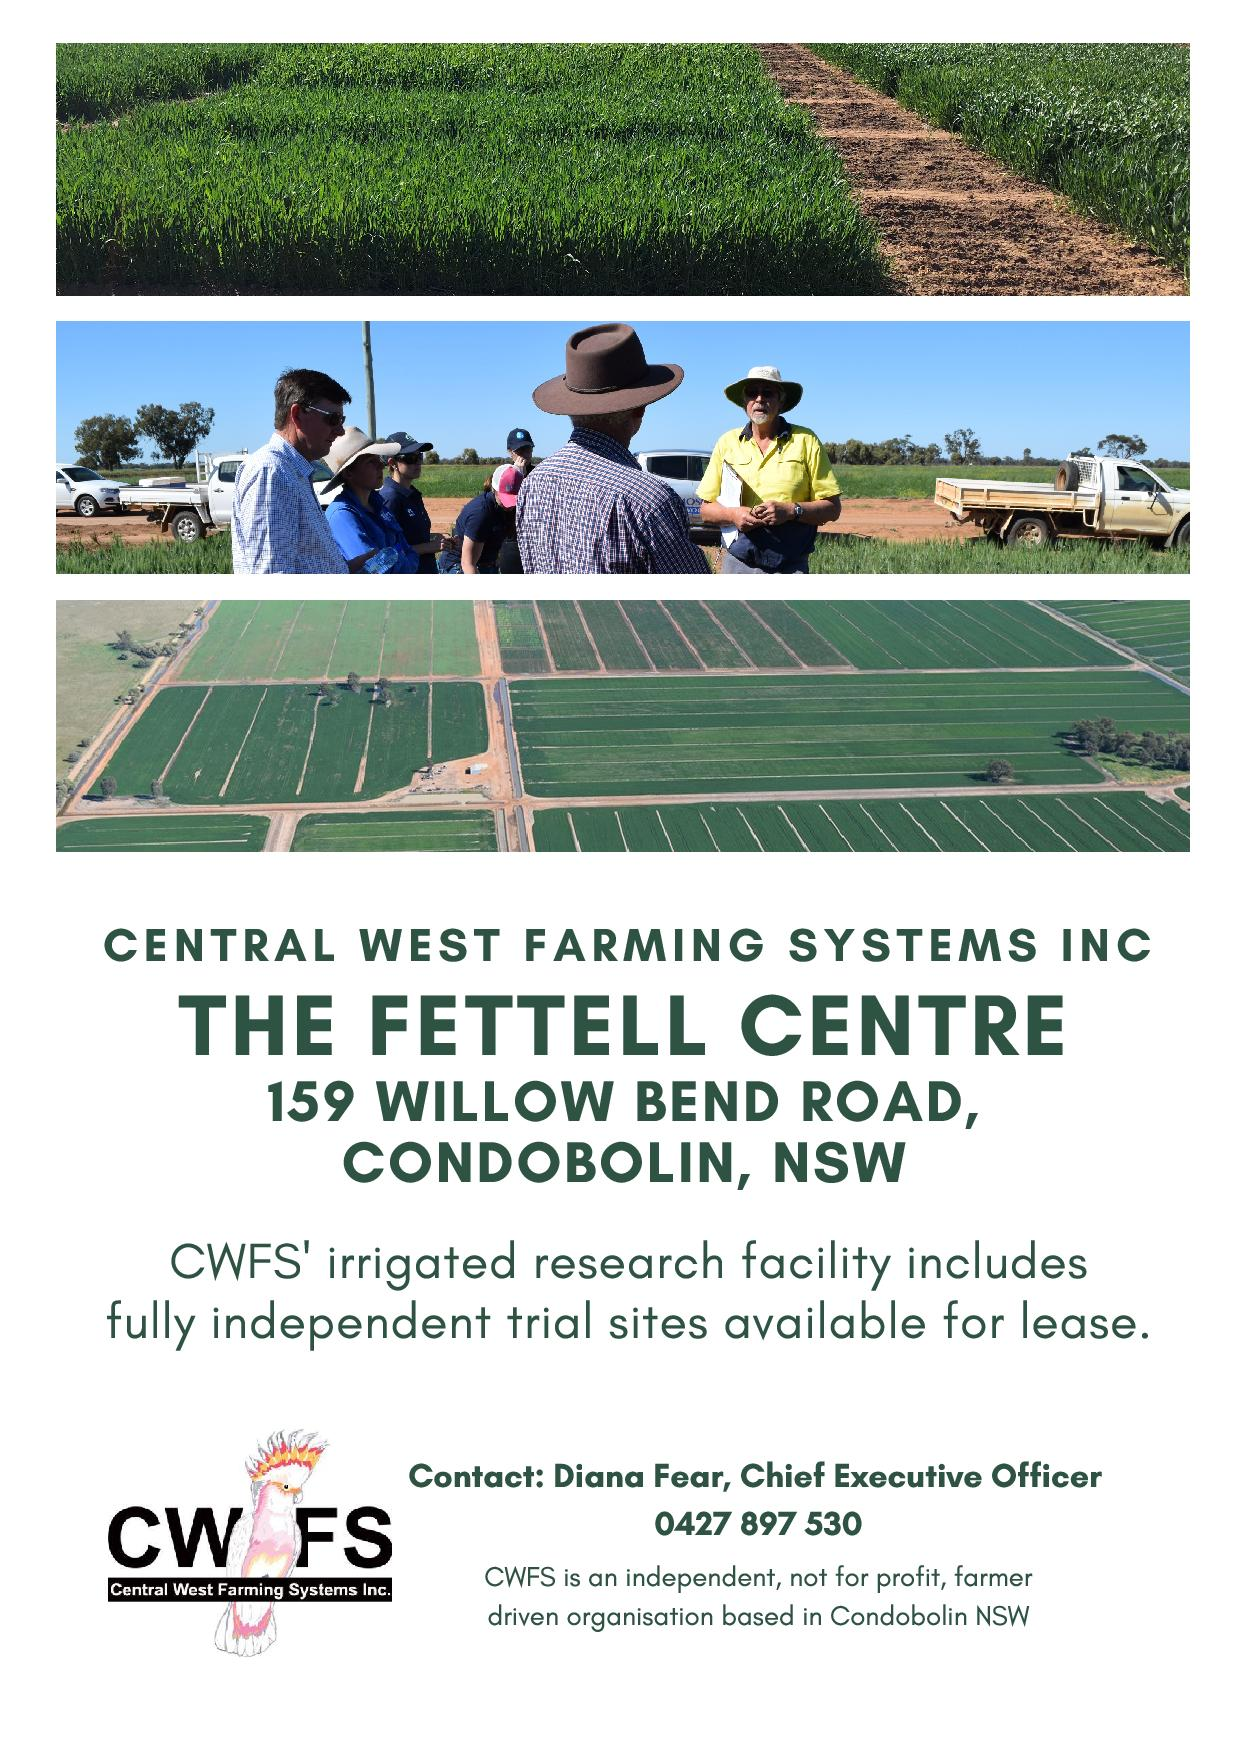 CWFS's irrigated research facility includes fully independent trial site available for lease